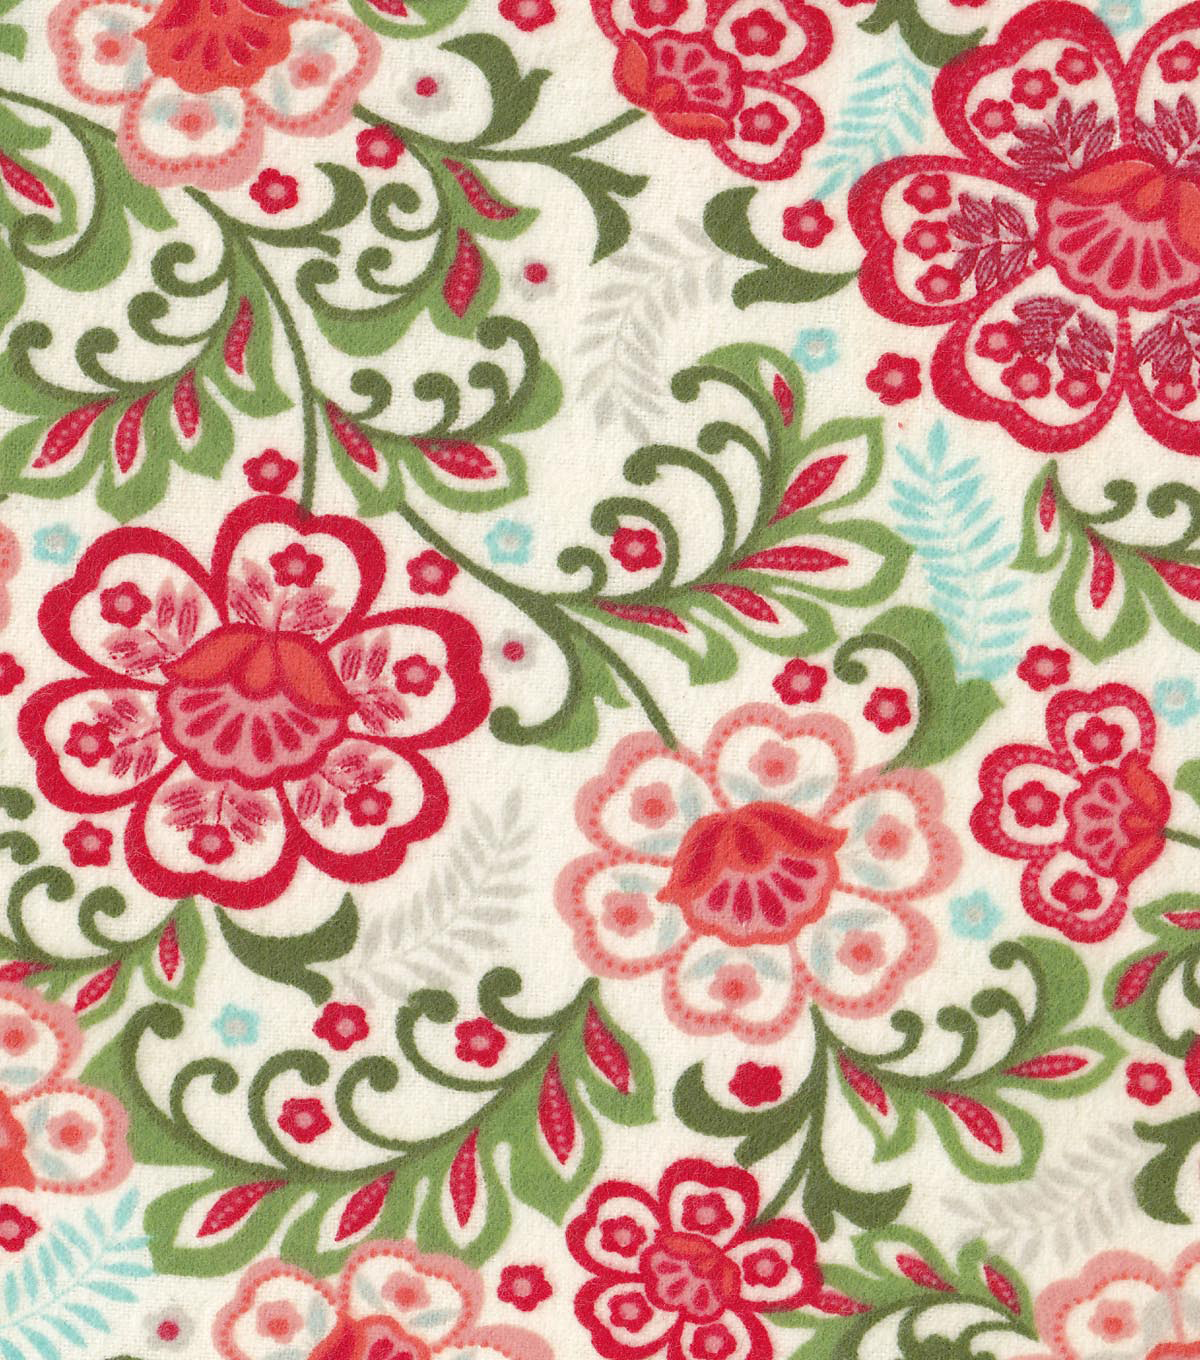 Snuggle Flannel Fabric -Pretty Floral